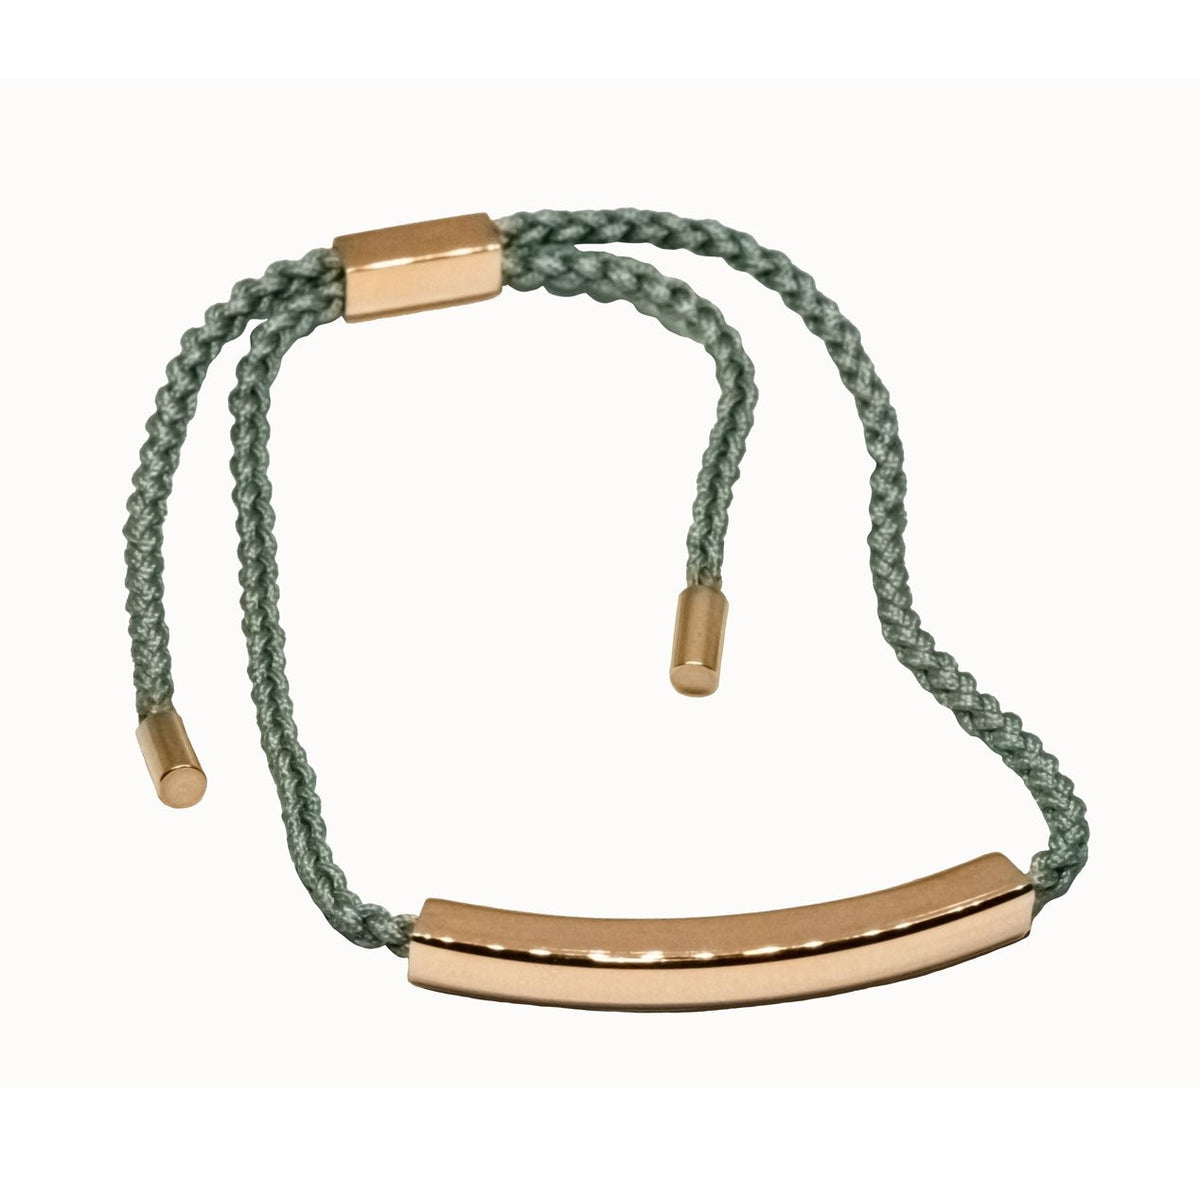 Green cord bracelet with rose gold 9ct vermeil bar